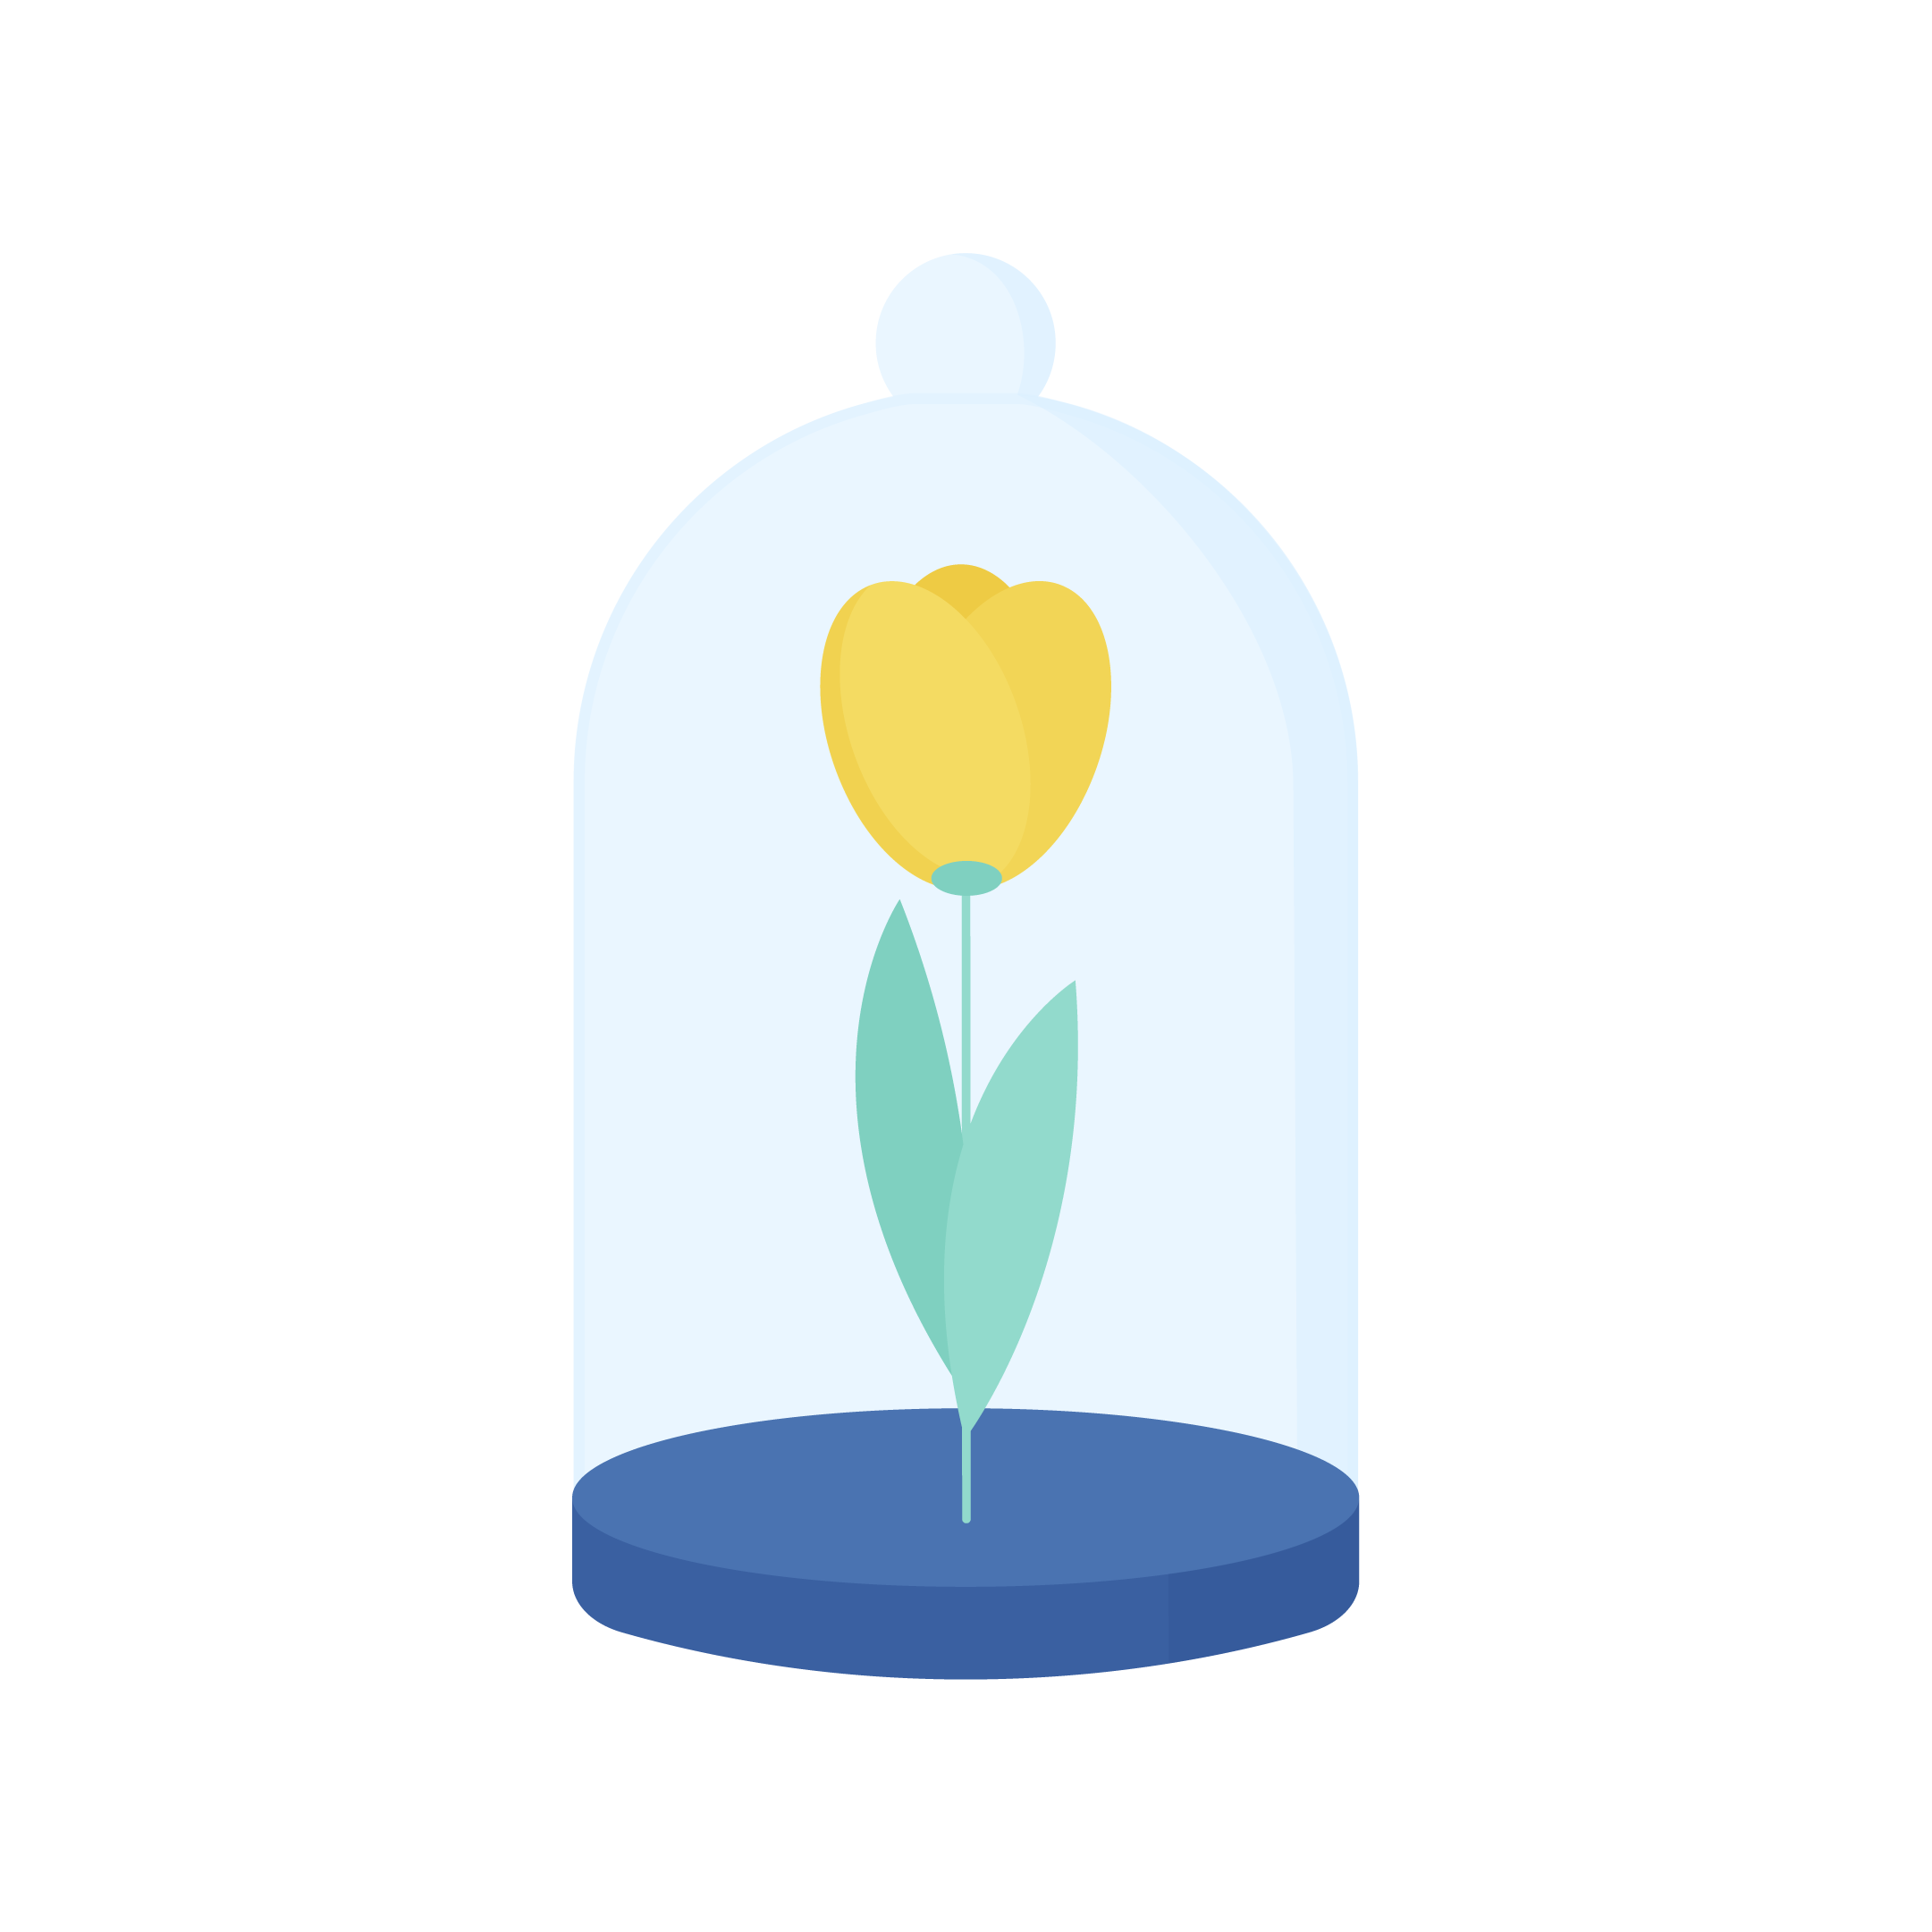 Vector illustration of a tulip in a glass dome in flat design style